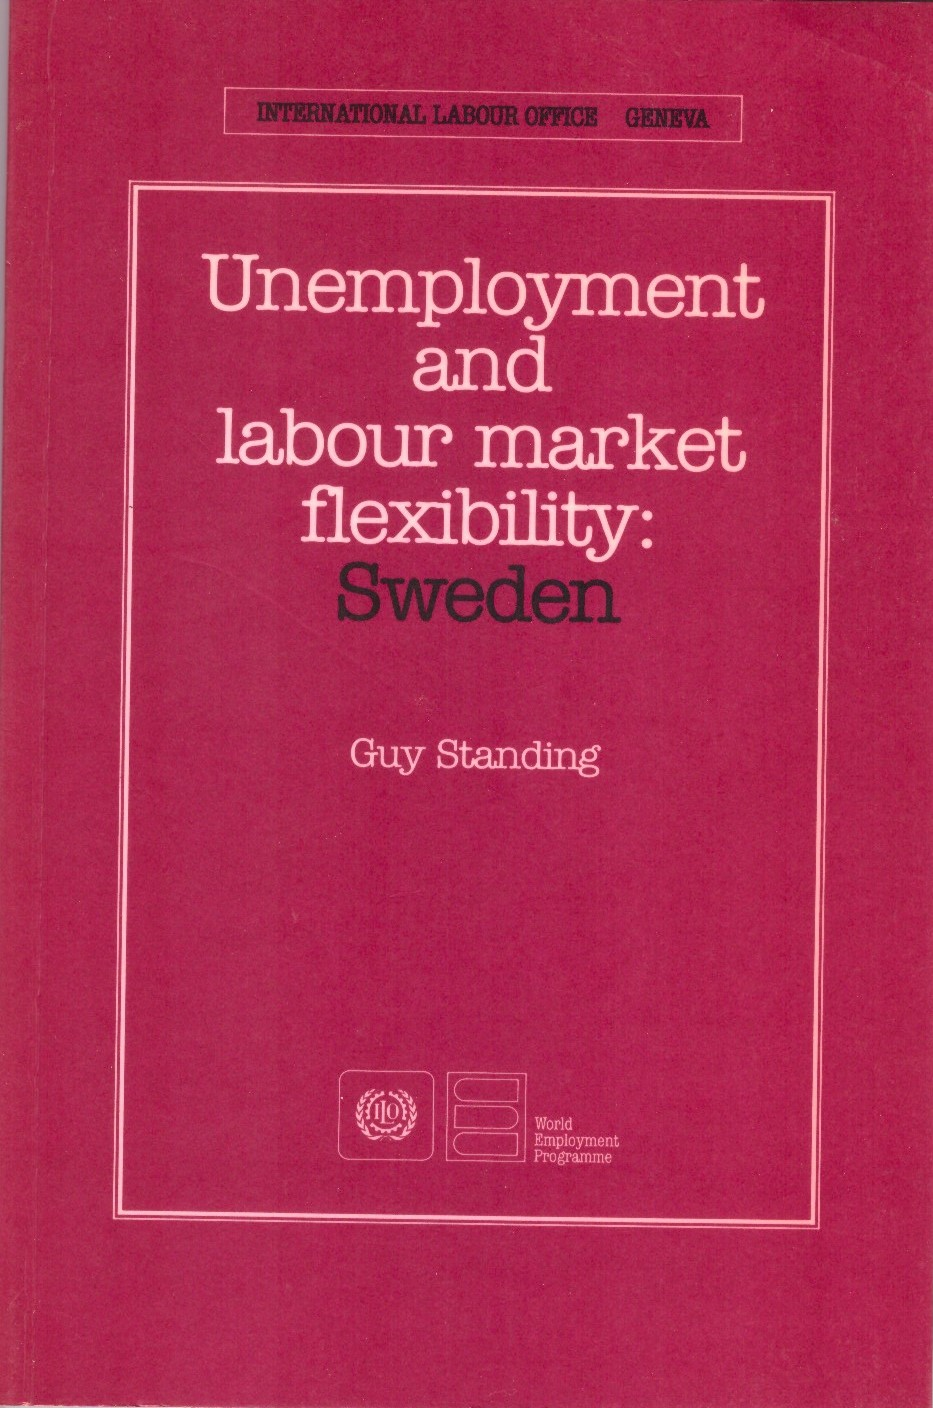 Unemployment & labour market flexibility - Sweden